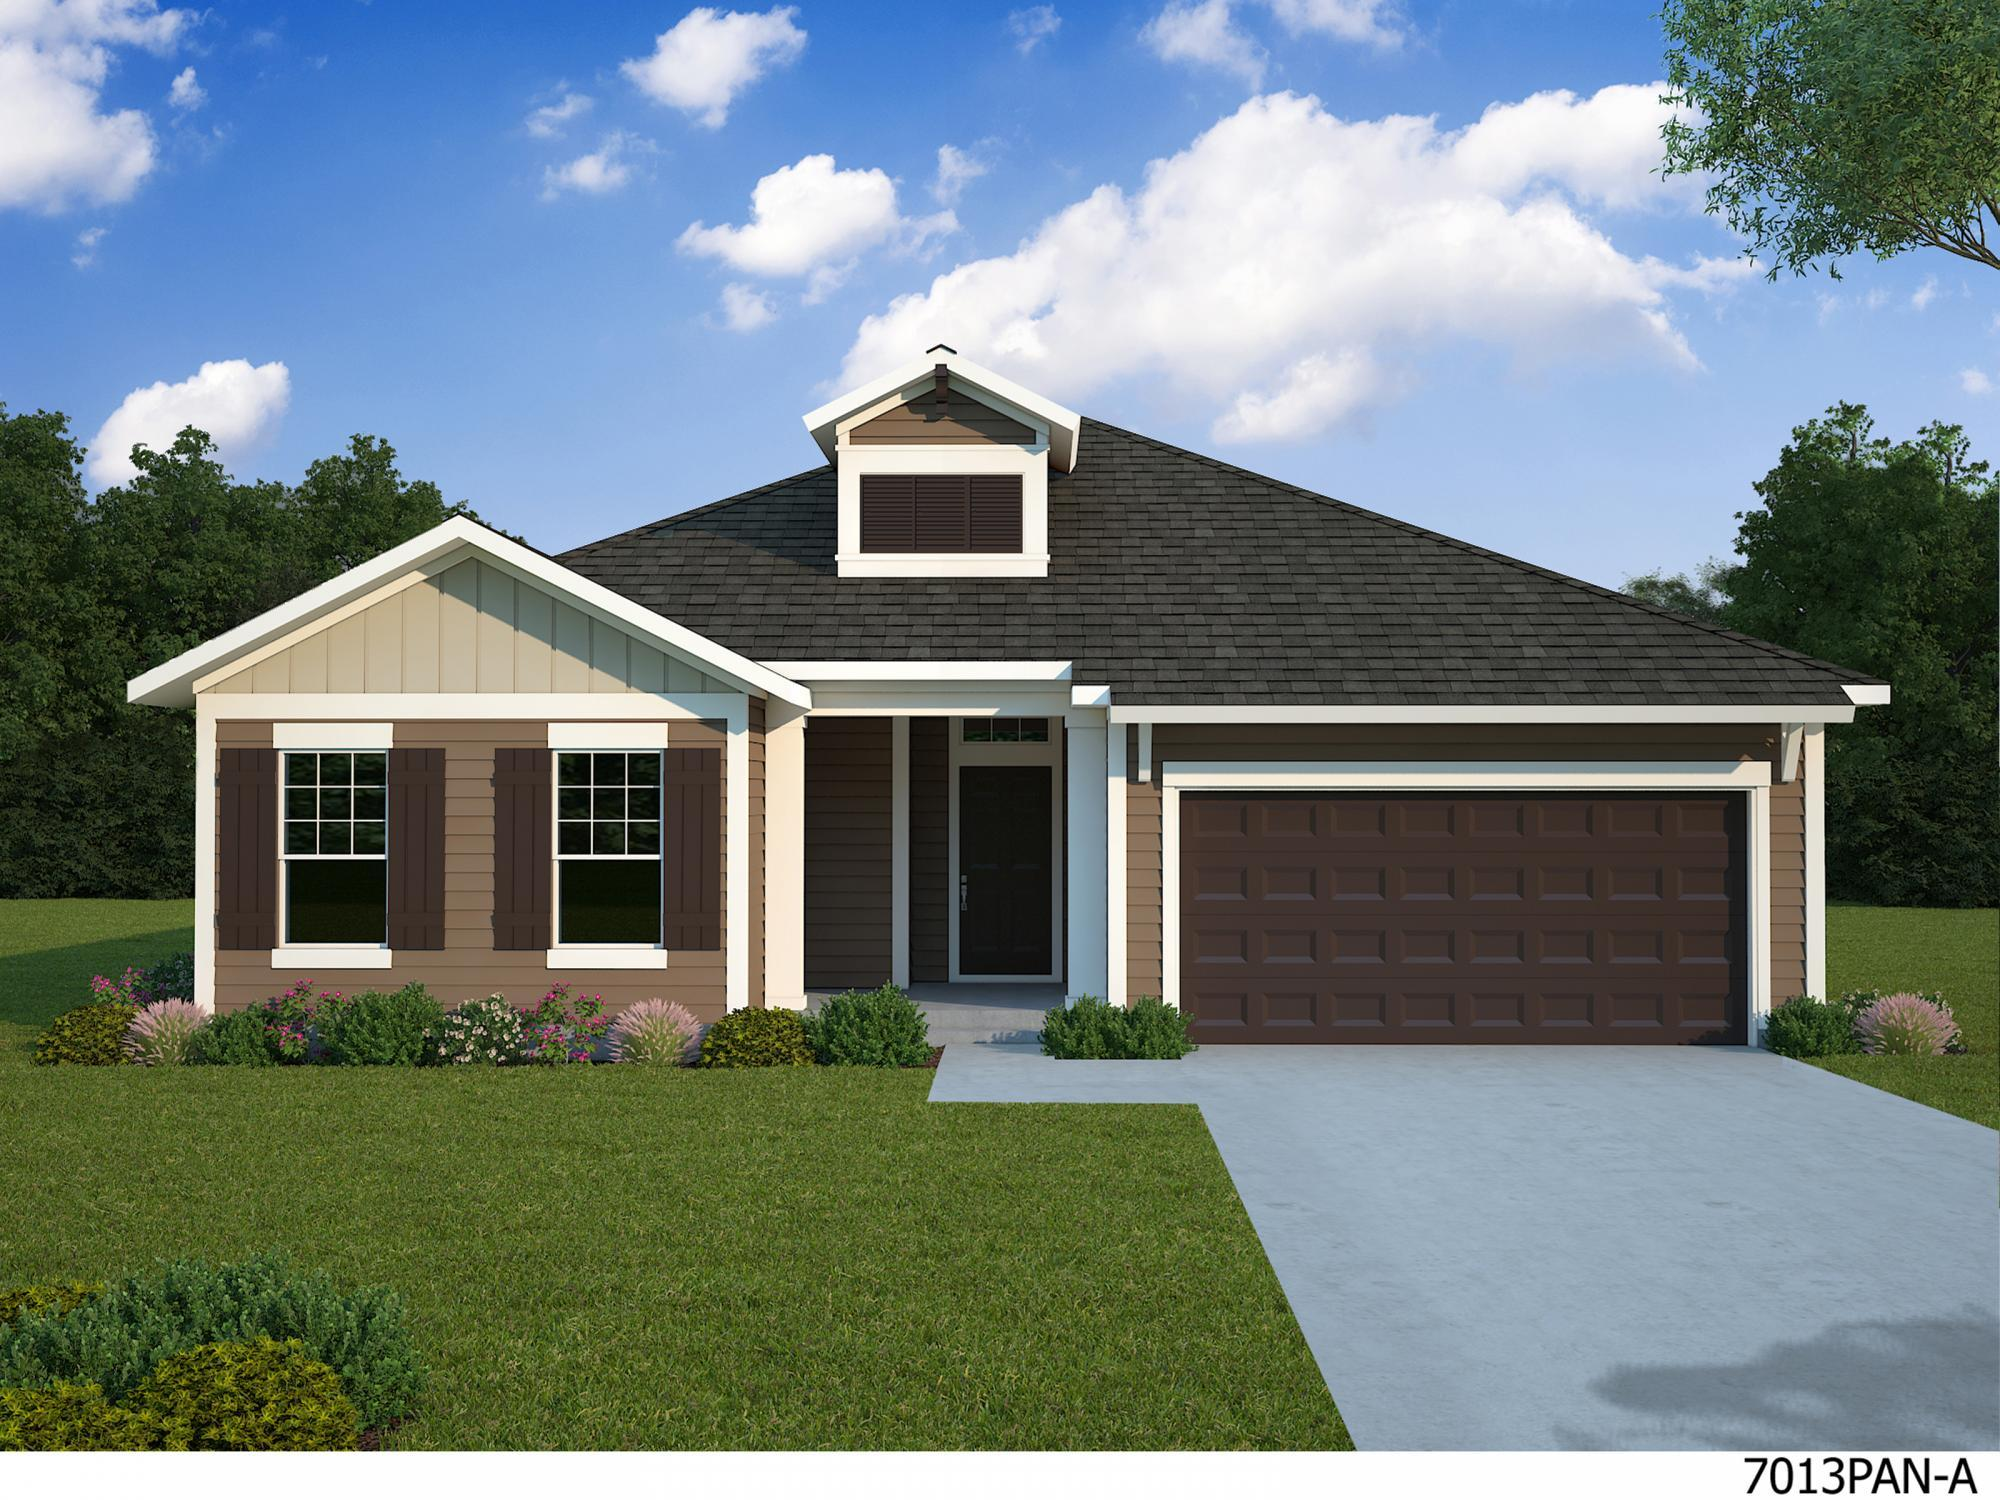 View large photos of Samuel Taylor Homes